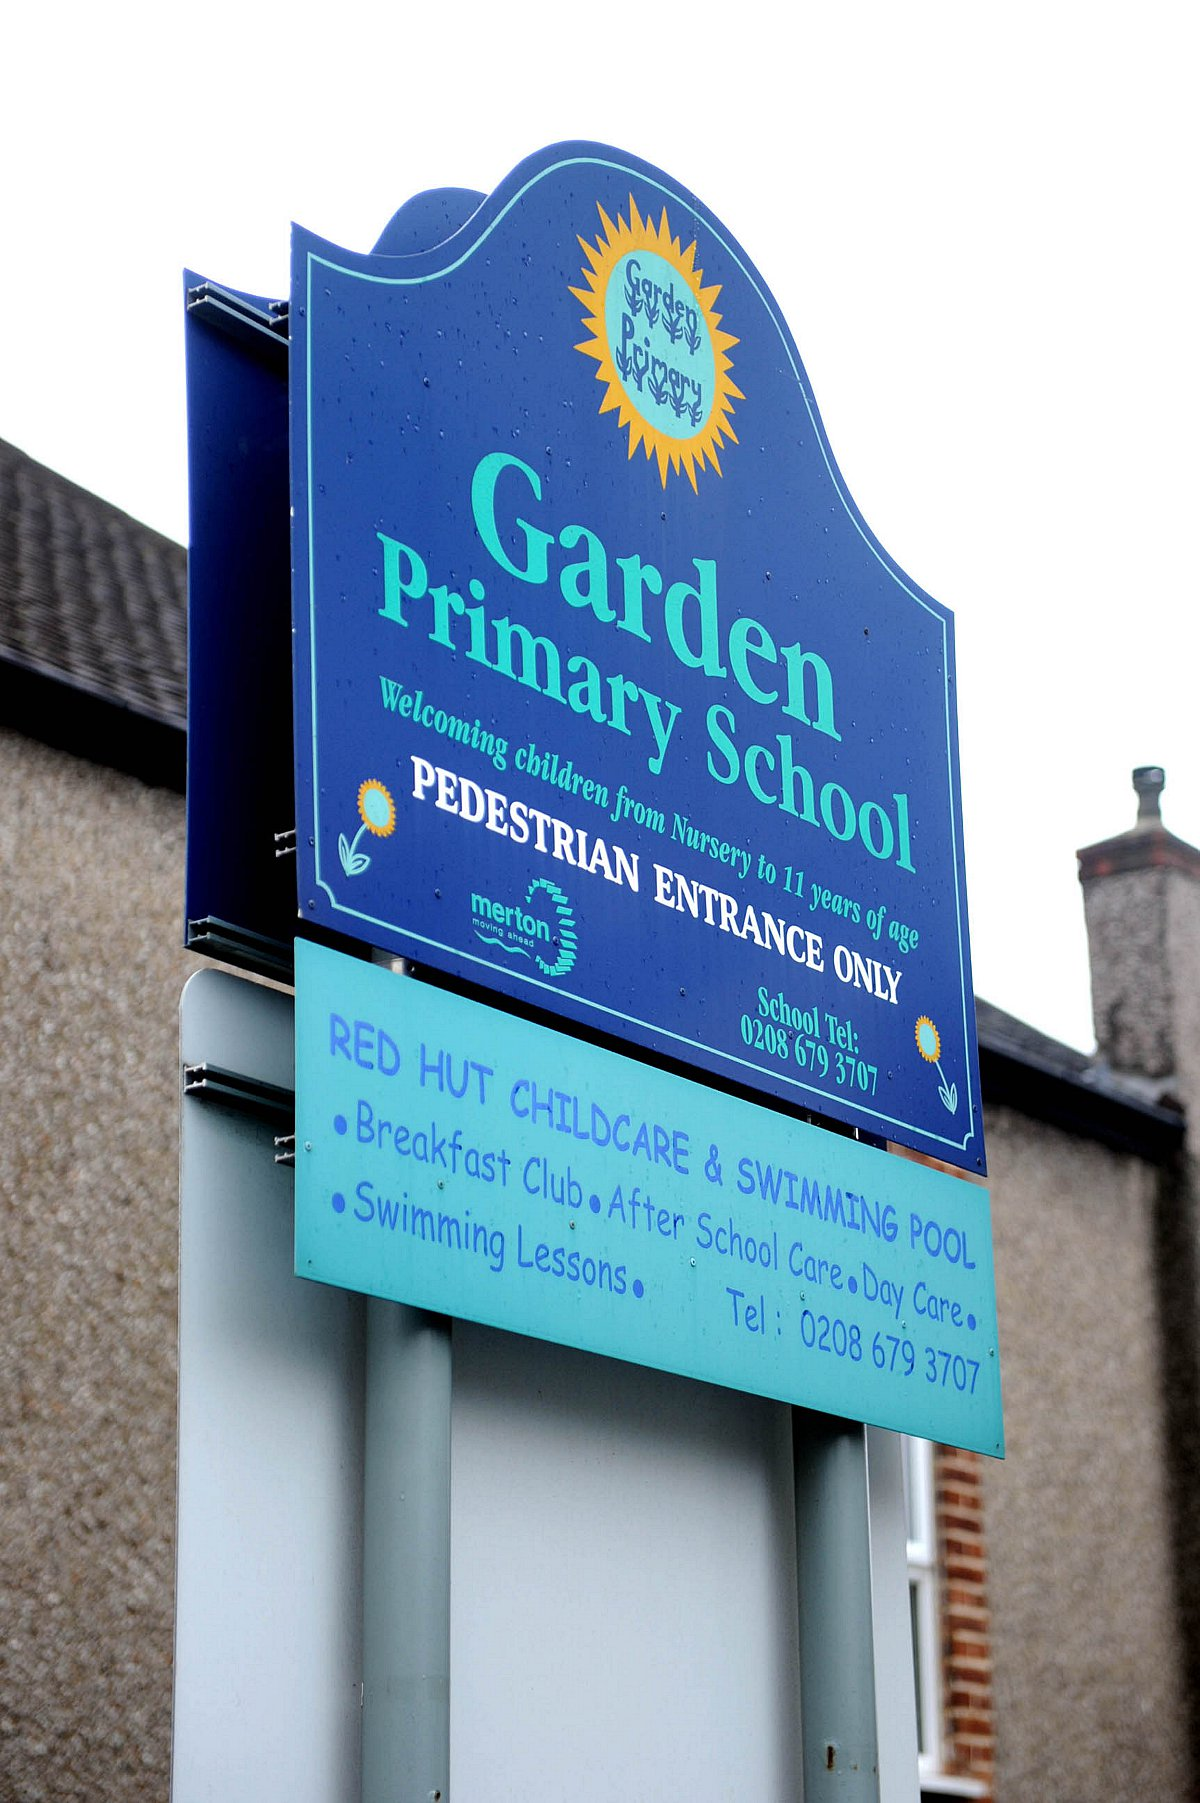 Garden Primary is set to become part of the Harris Federation